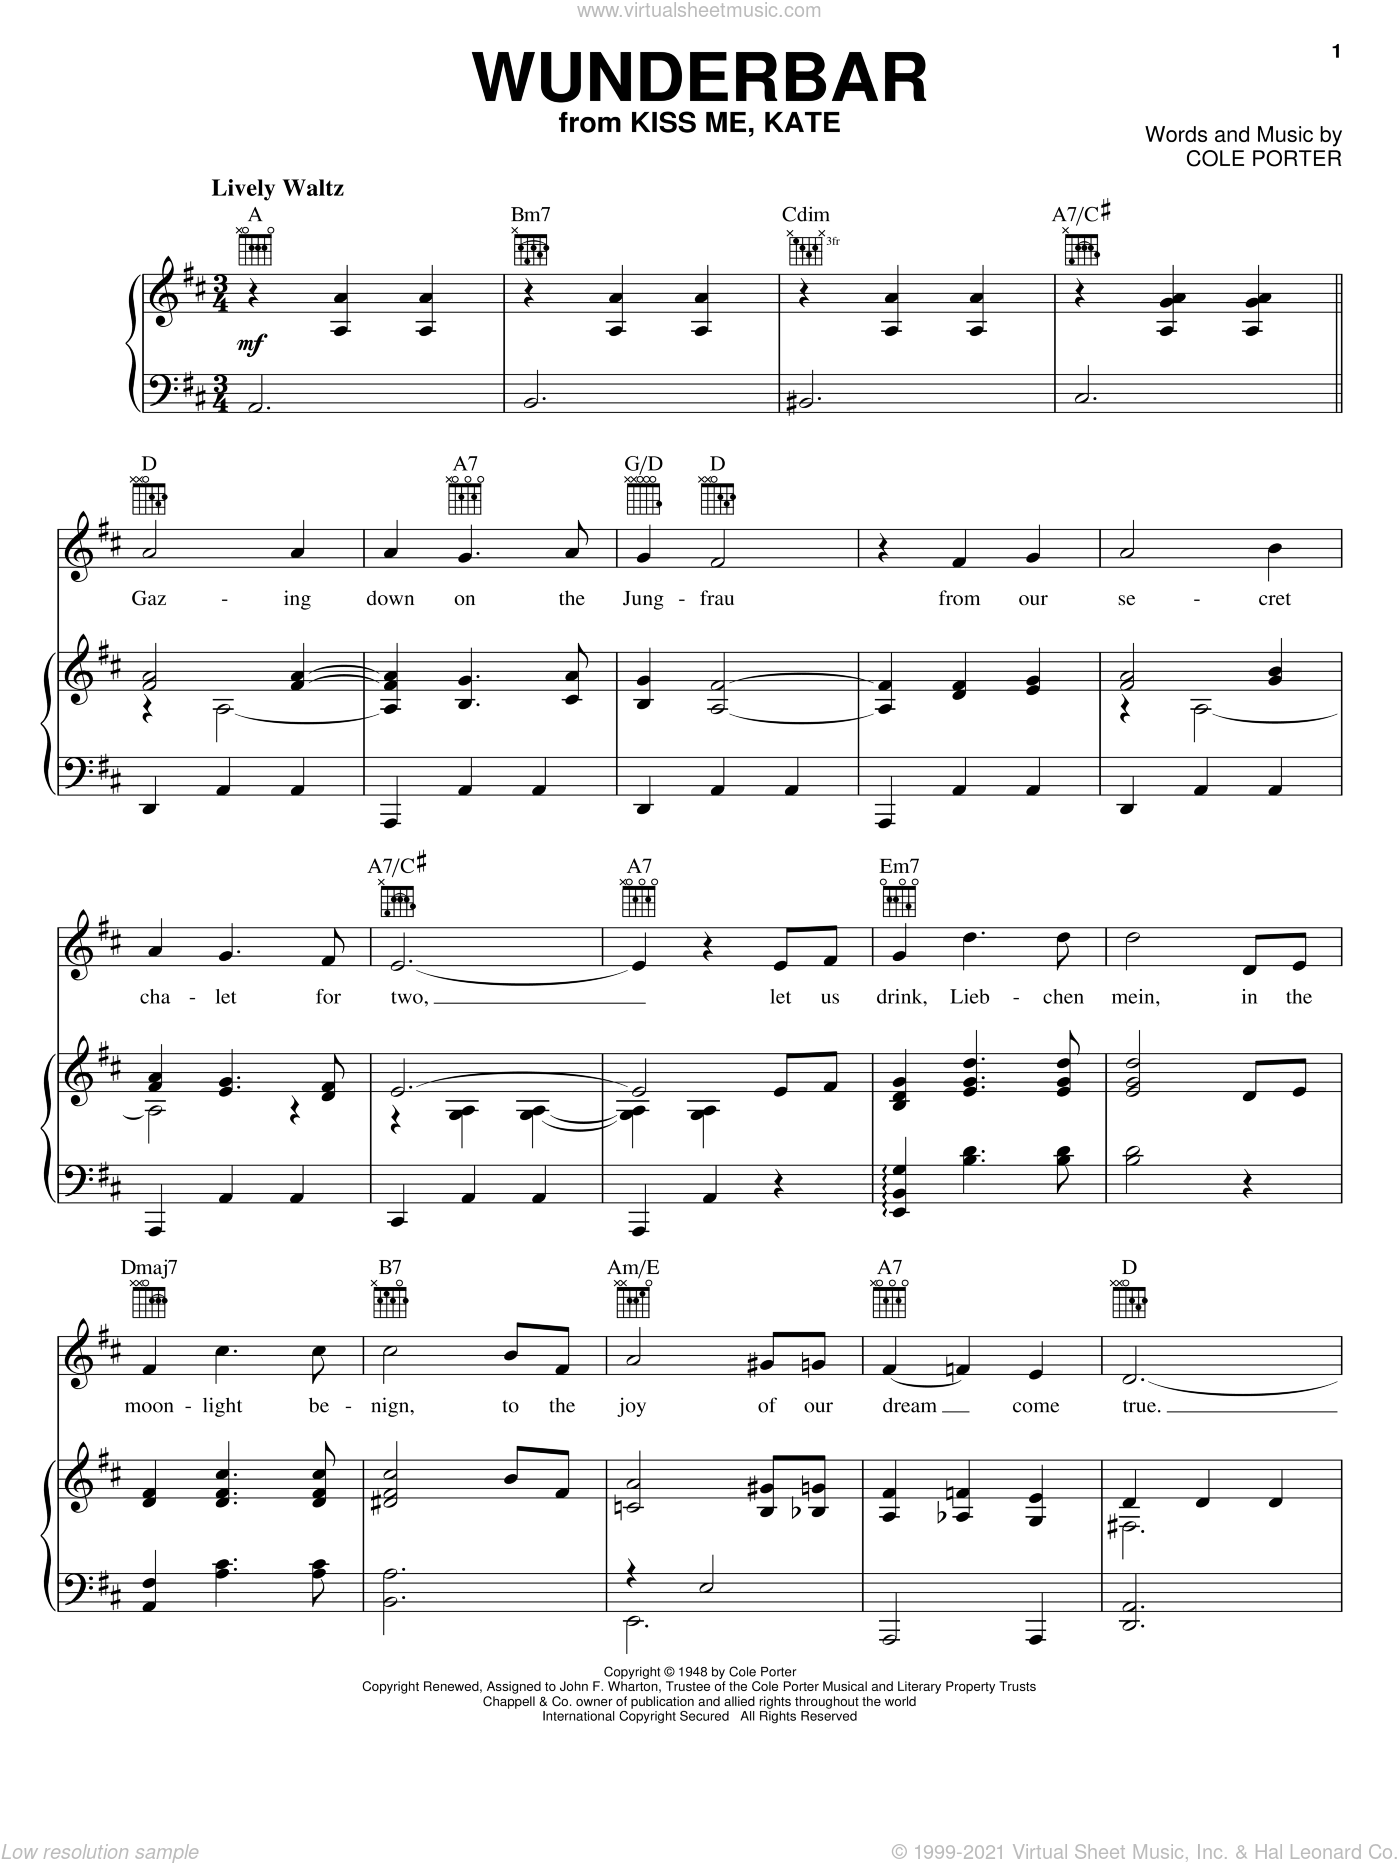 Wunderbar sheet music for voice, piano or guitar by Cole Porter and Kiss Me, Kate (Musical), intermediate skill level